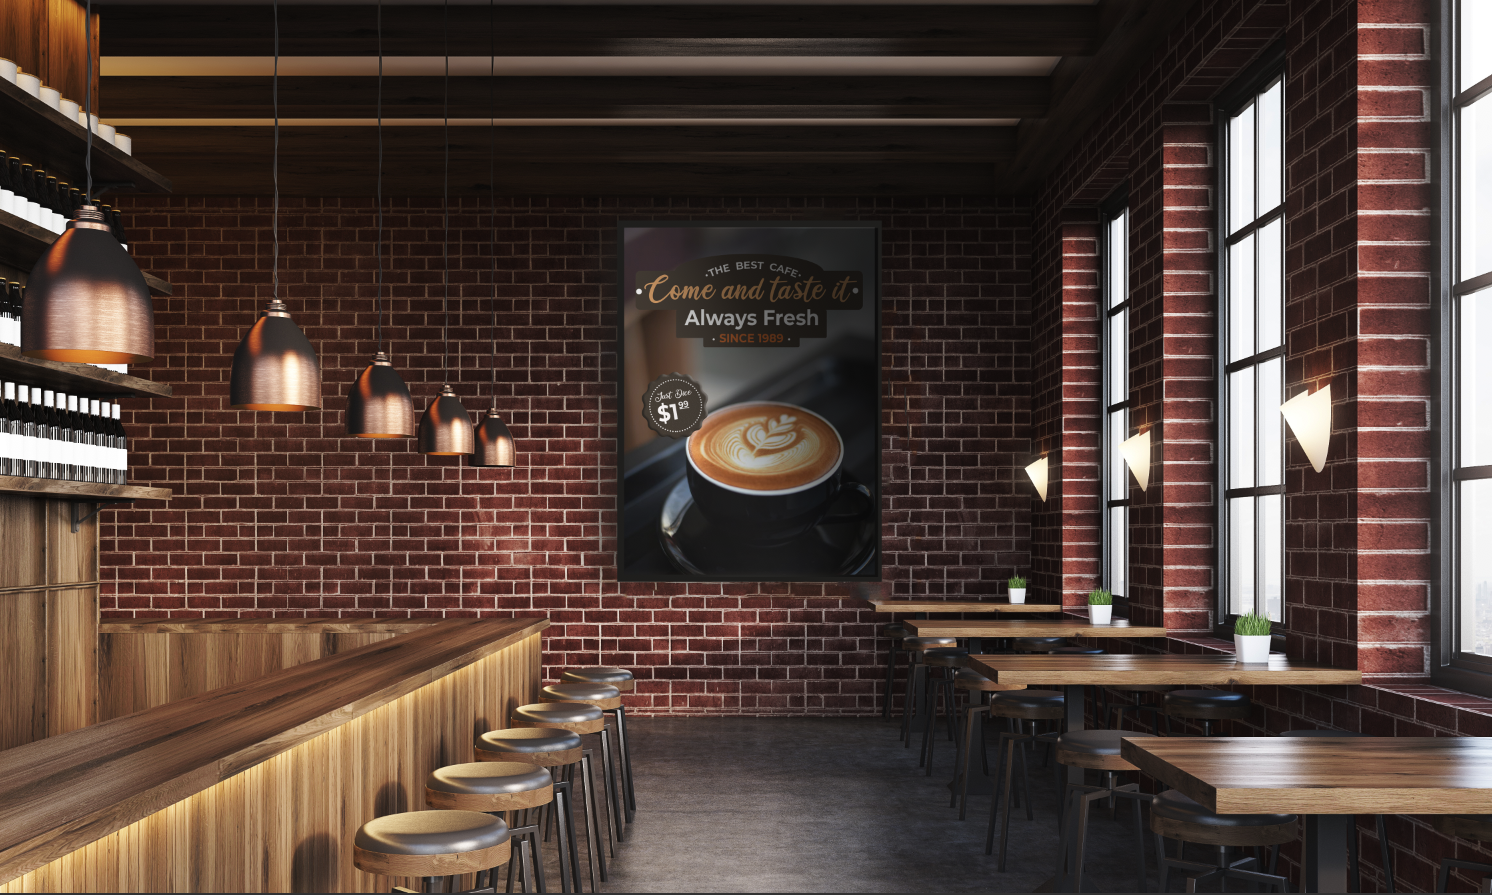 Screenly provides a powerful platform to setup and manage coffee shop digital signage.